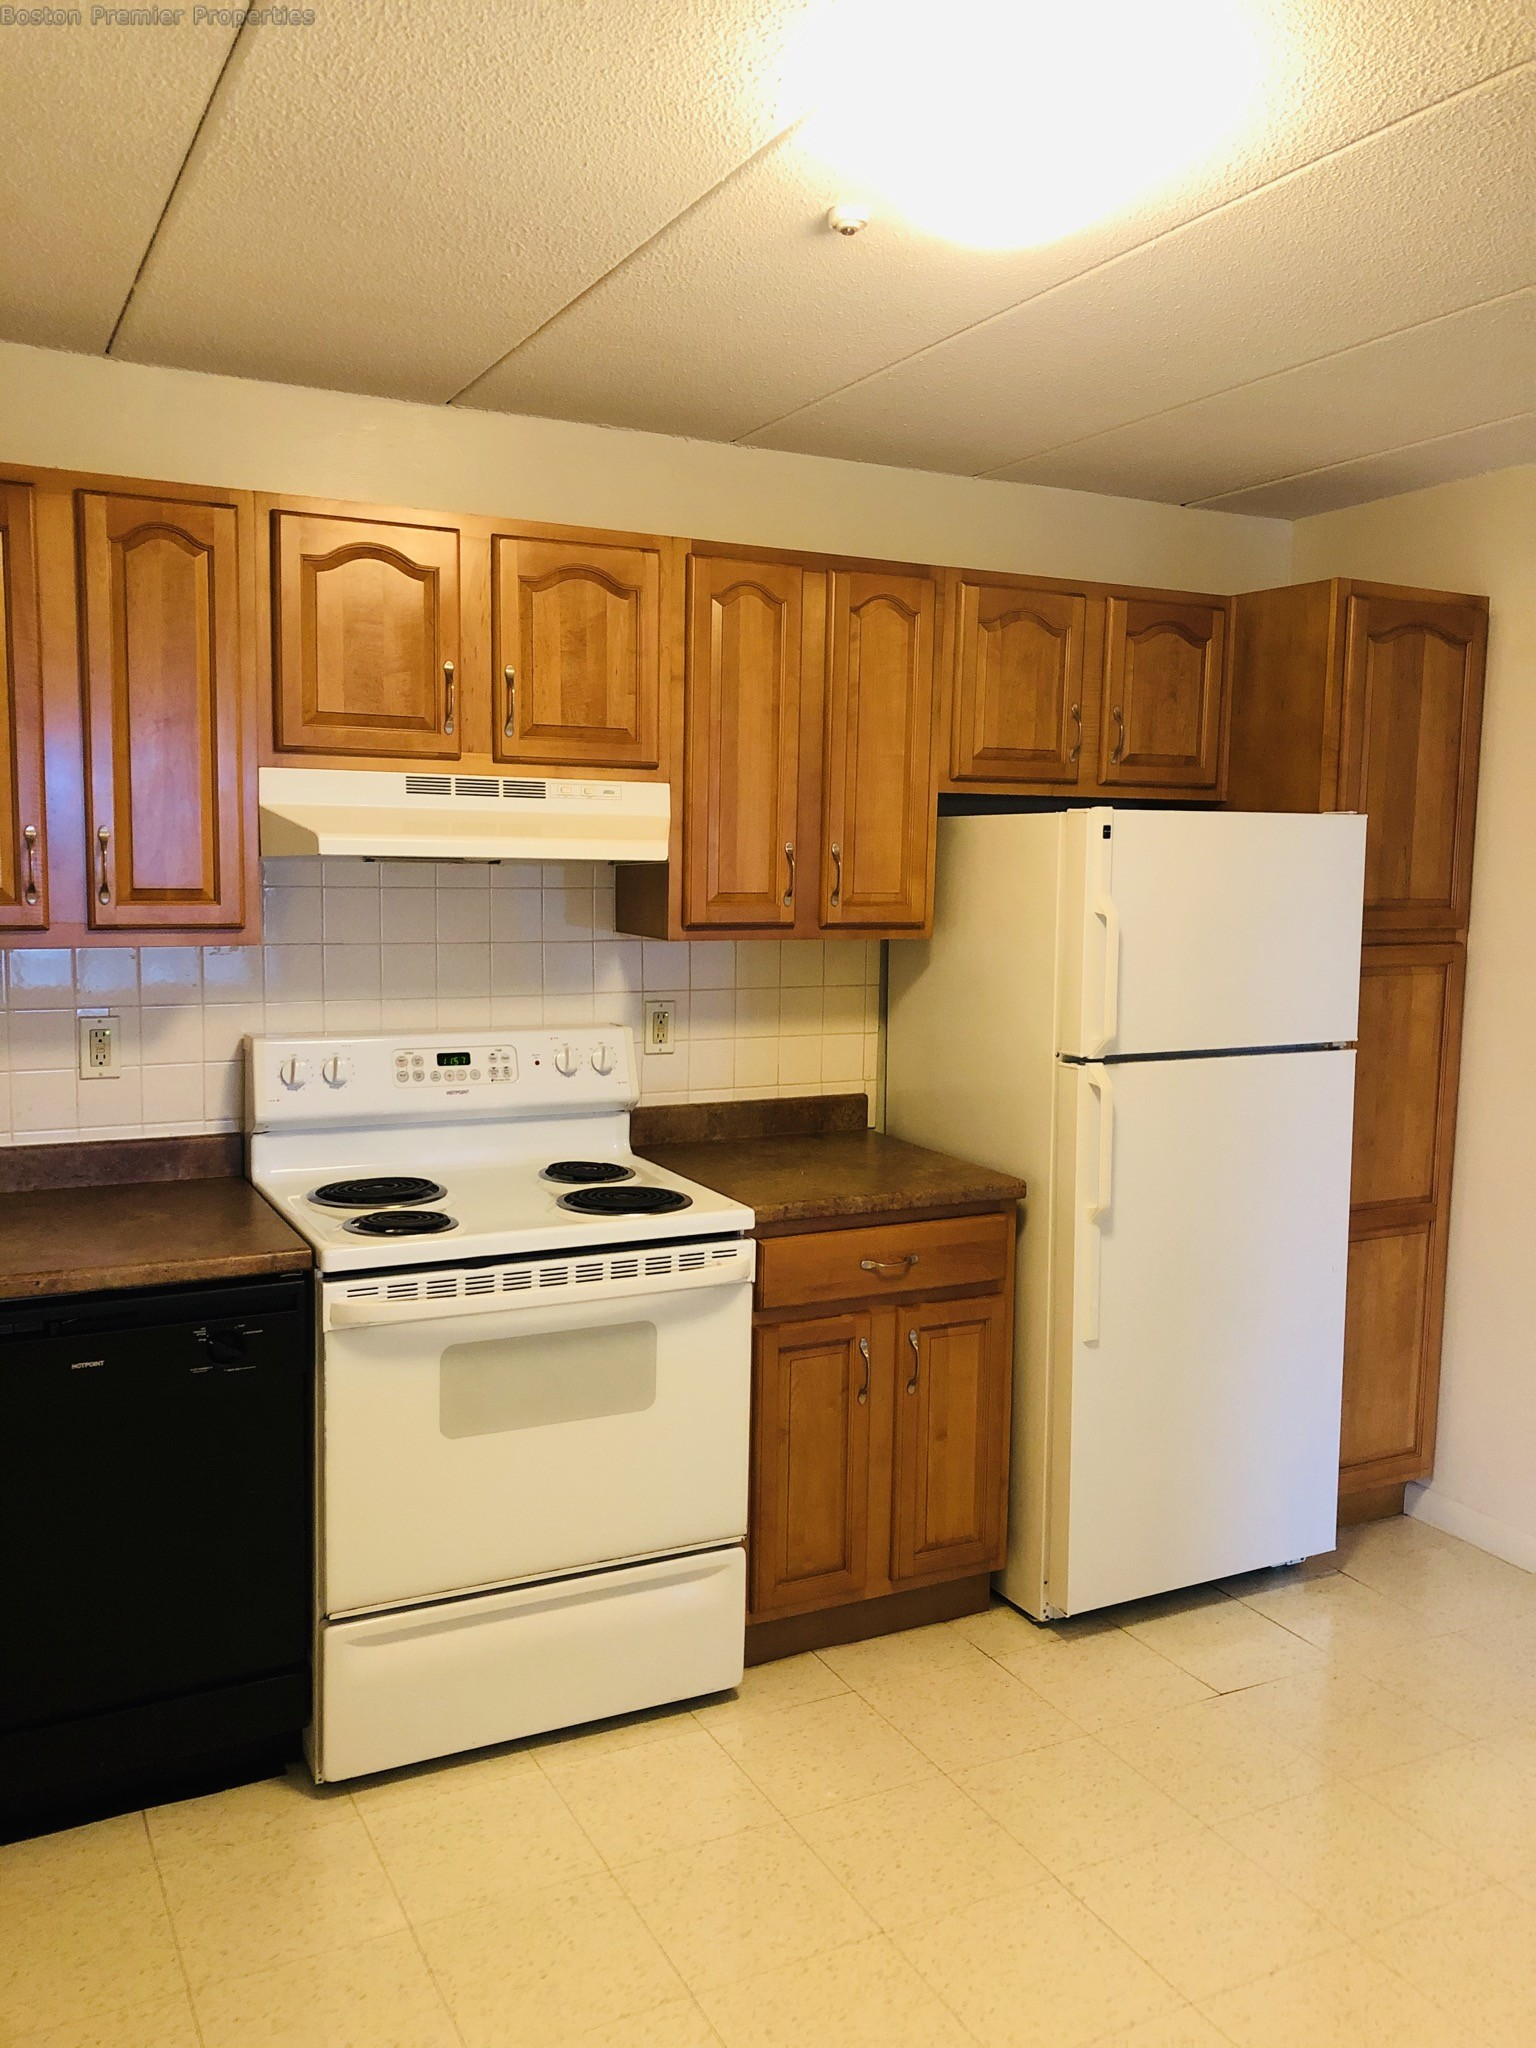 1 Bed, 1 Bath apartment in Quincy for $1,650